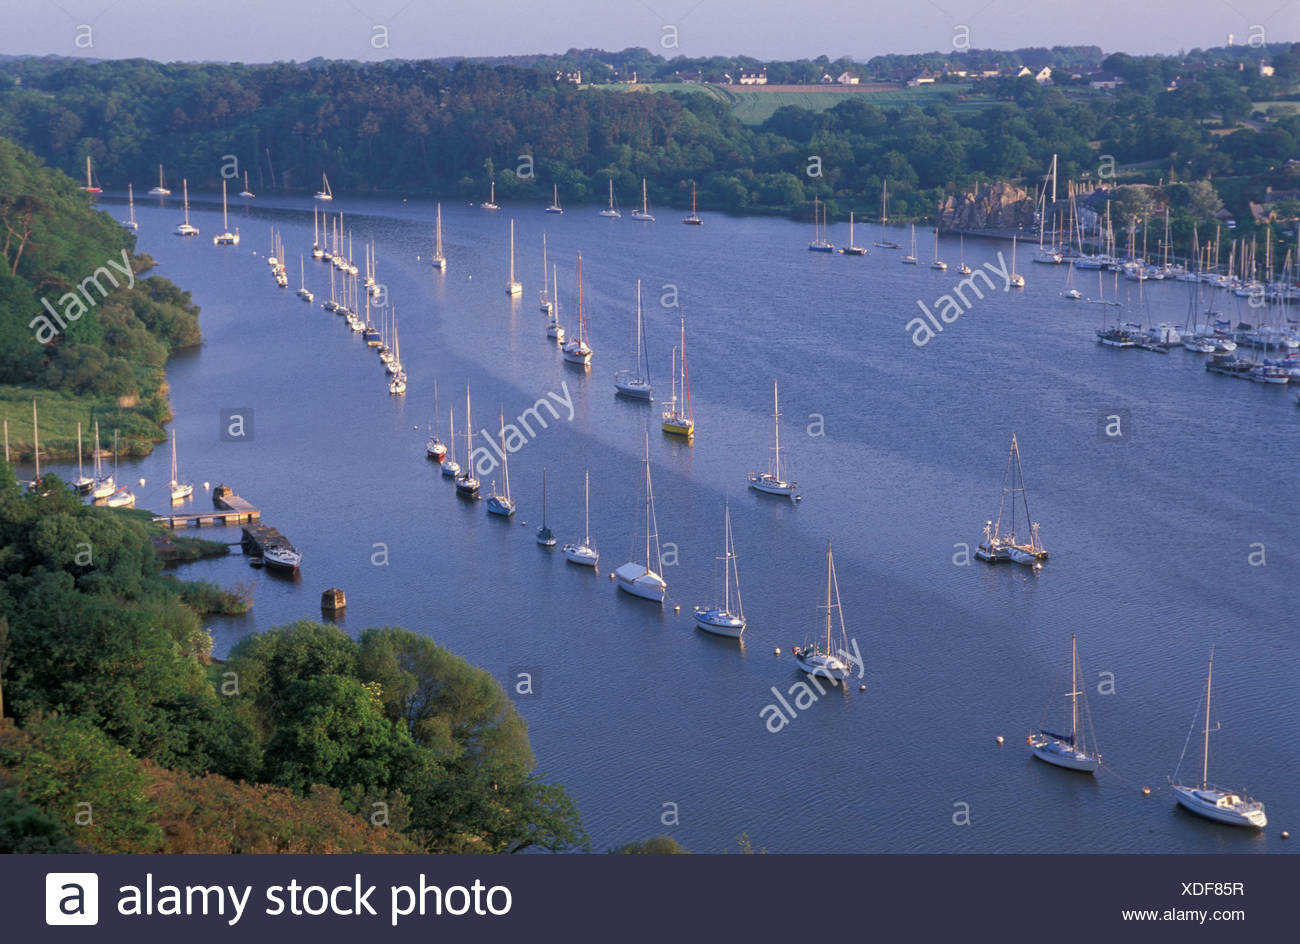 River, boats, Brittany, France, Europe, anchored - Stock Image